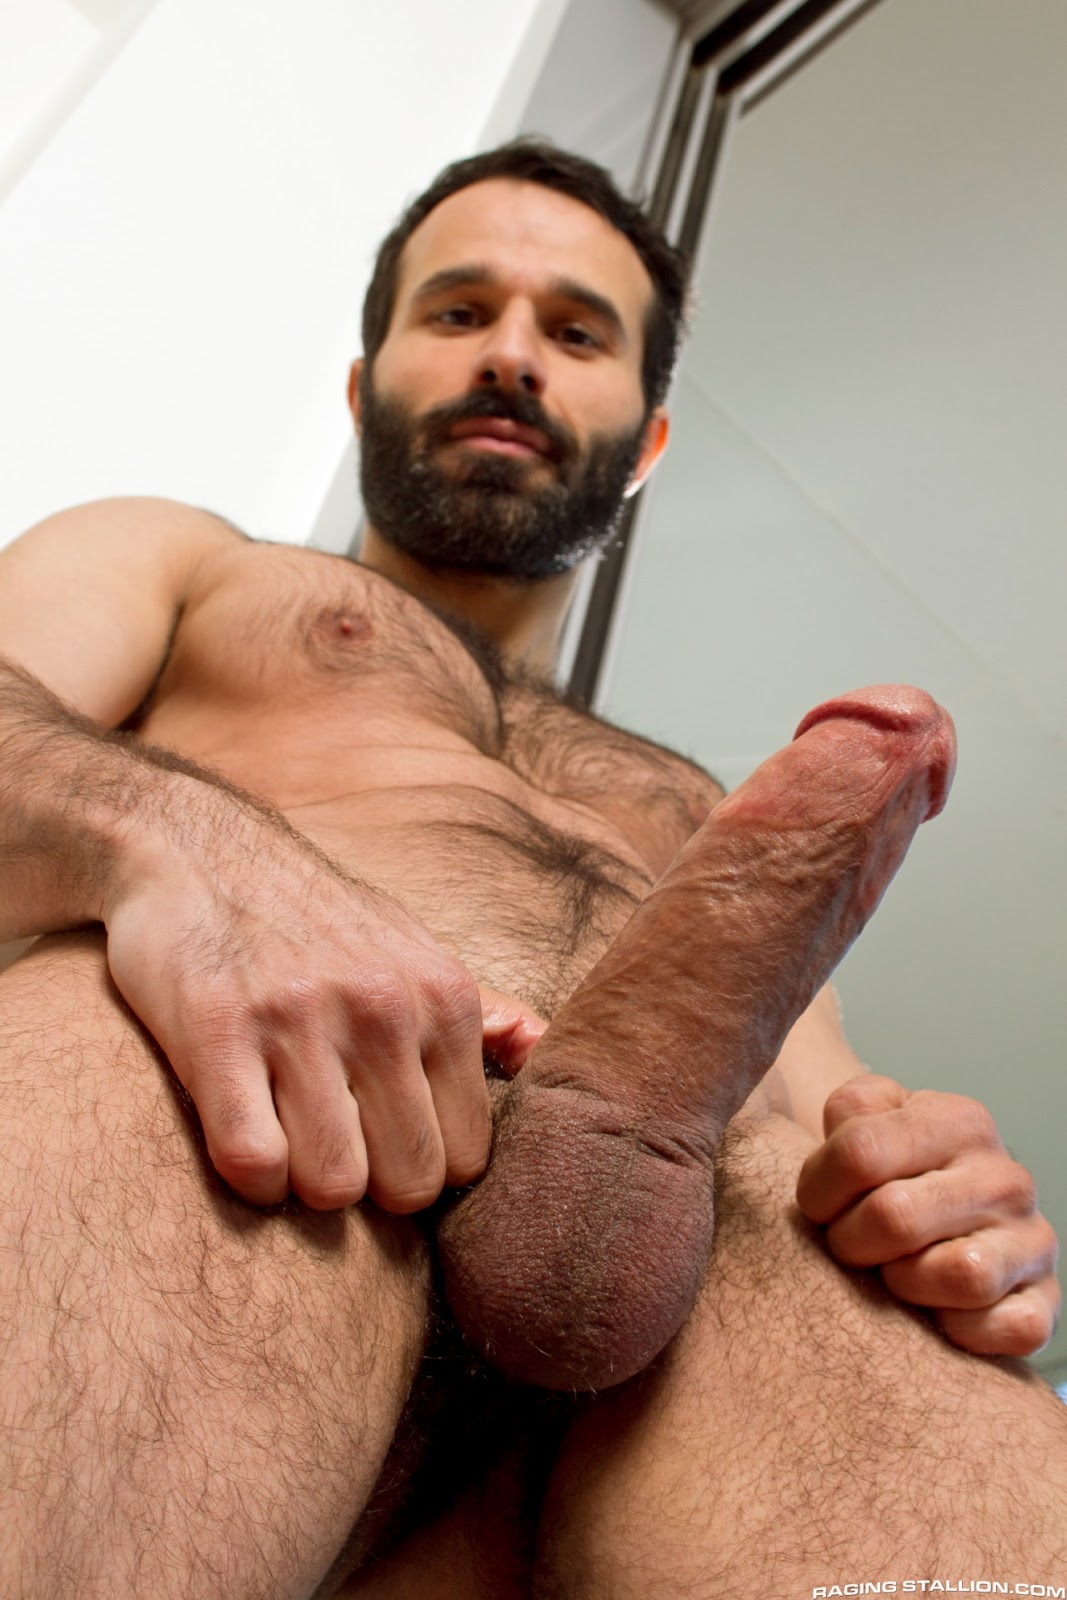 Alain adam solo video - 1 5